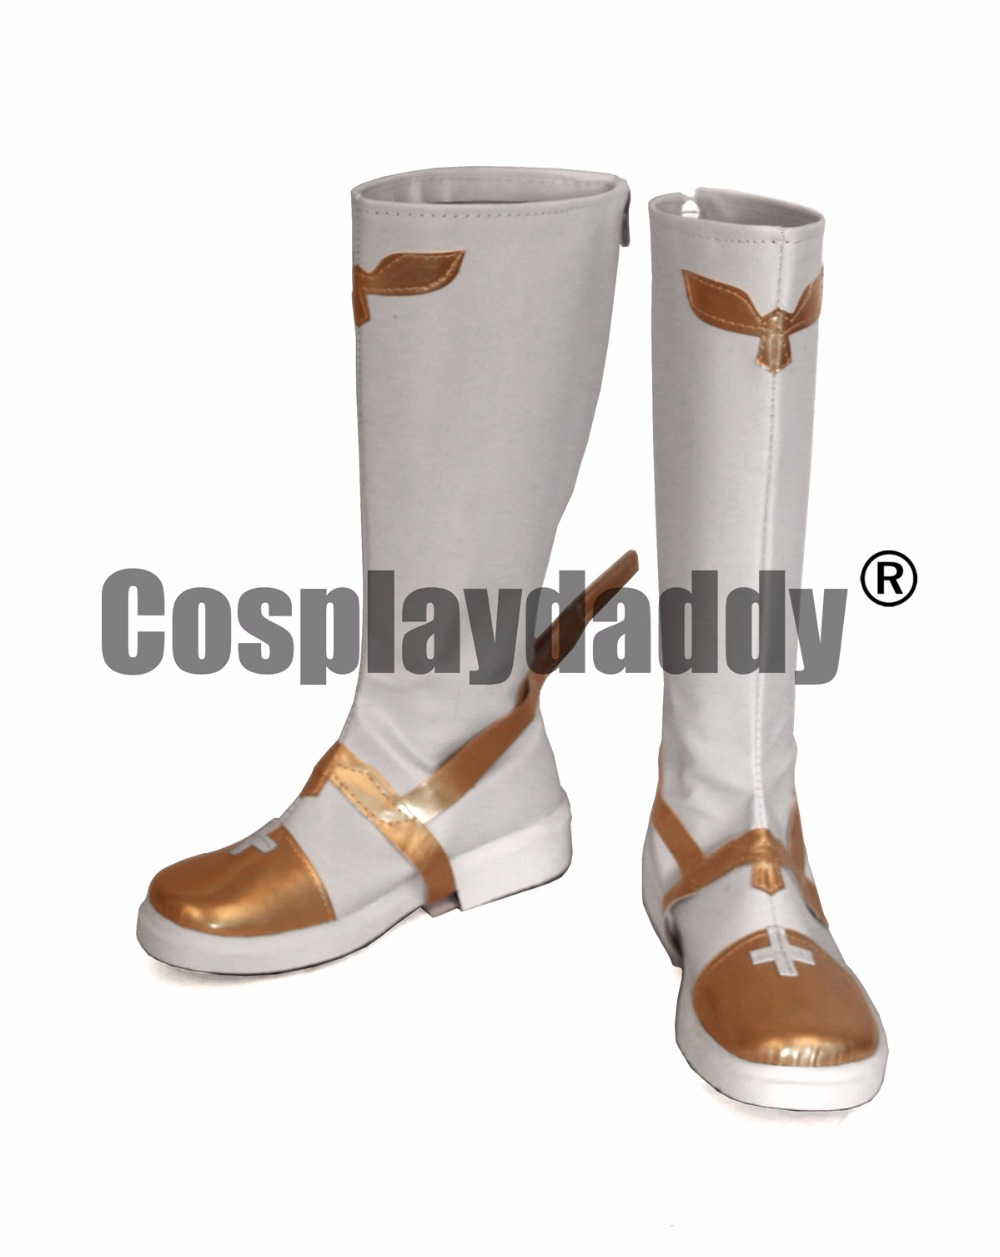 Fate Apocrypha Rider of Black Faction Twelve Paladins of Charlemagne Astolfo White Cosplay Boots Shoes S008